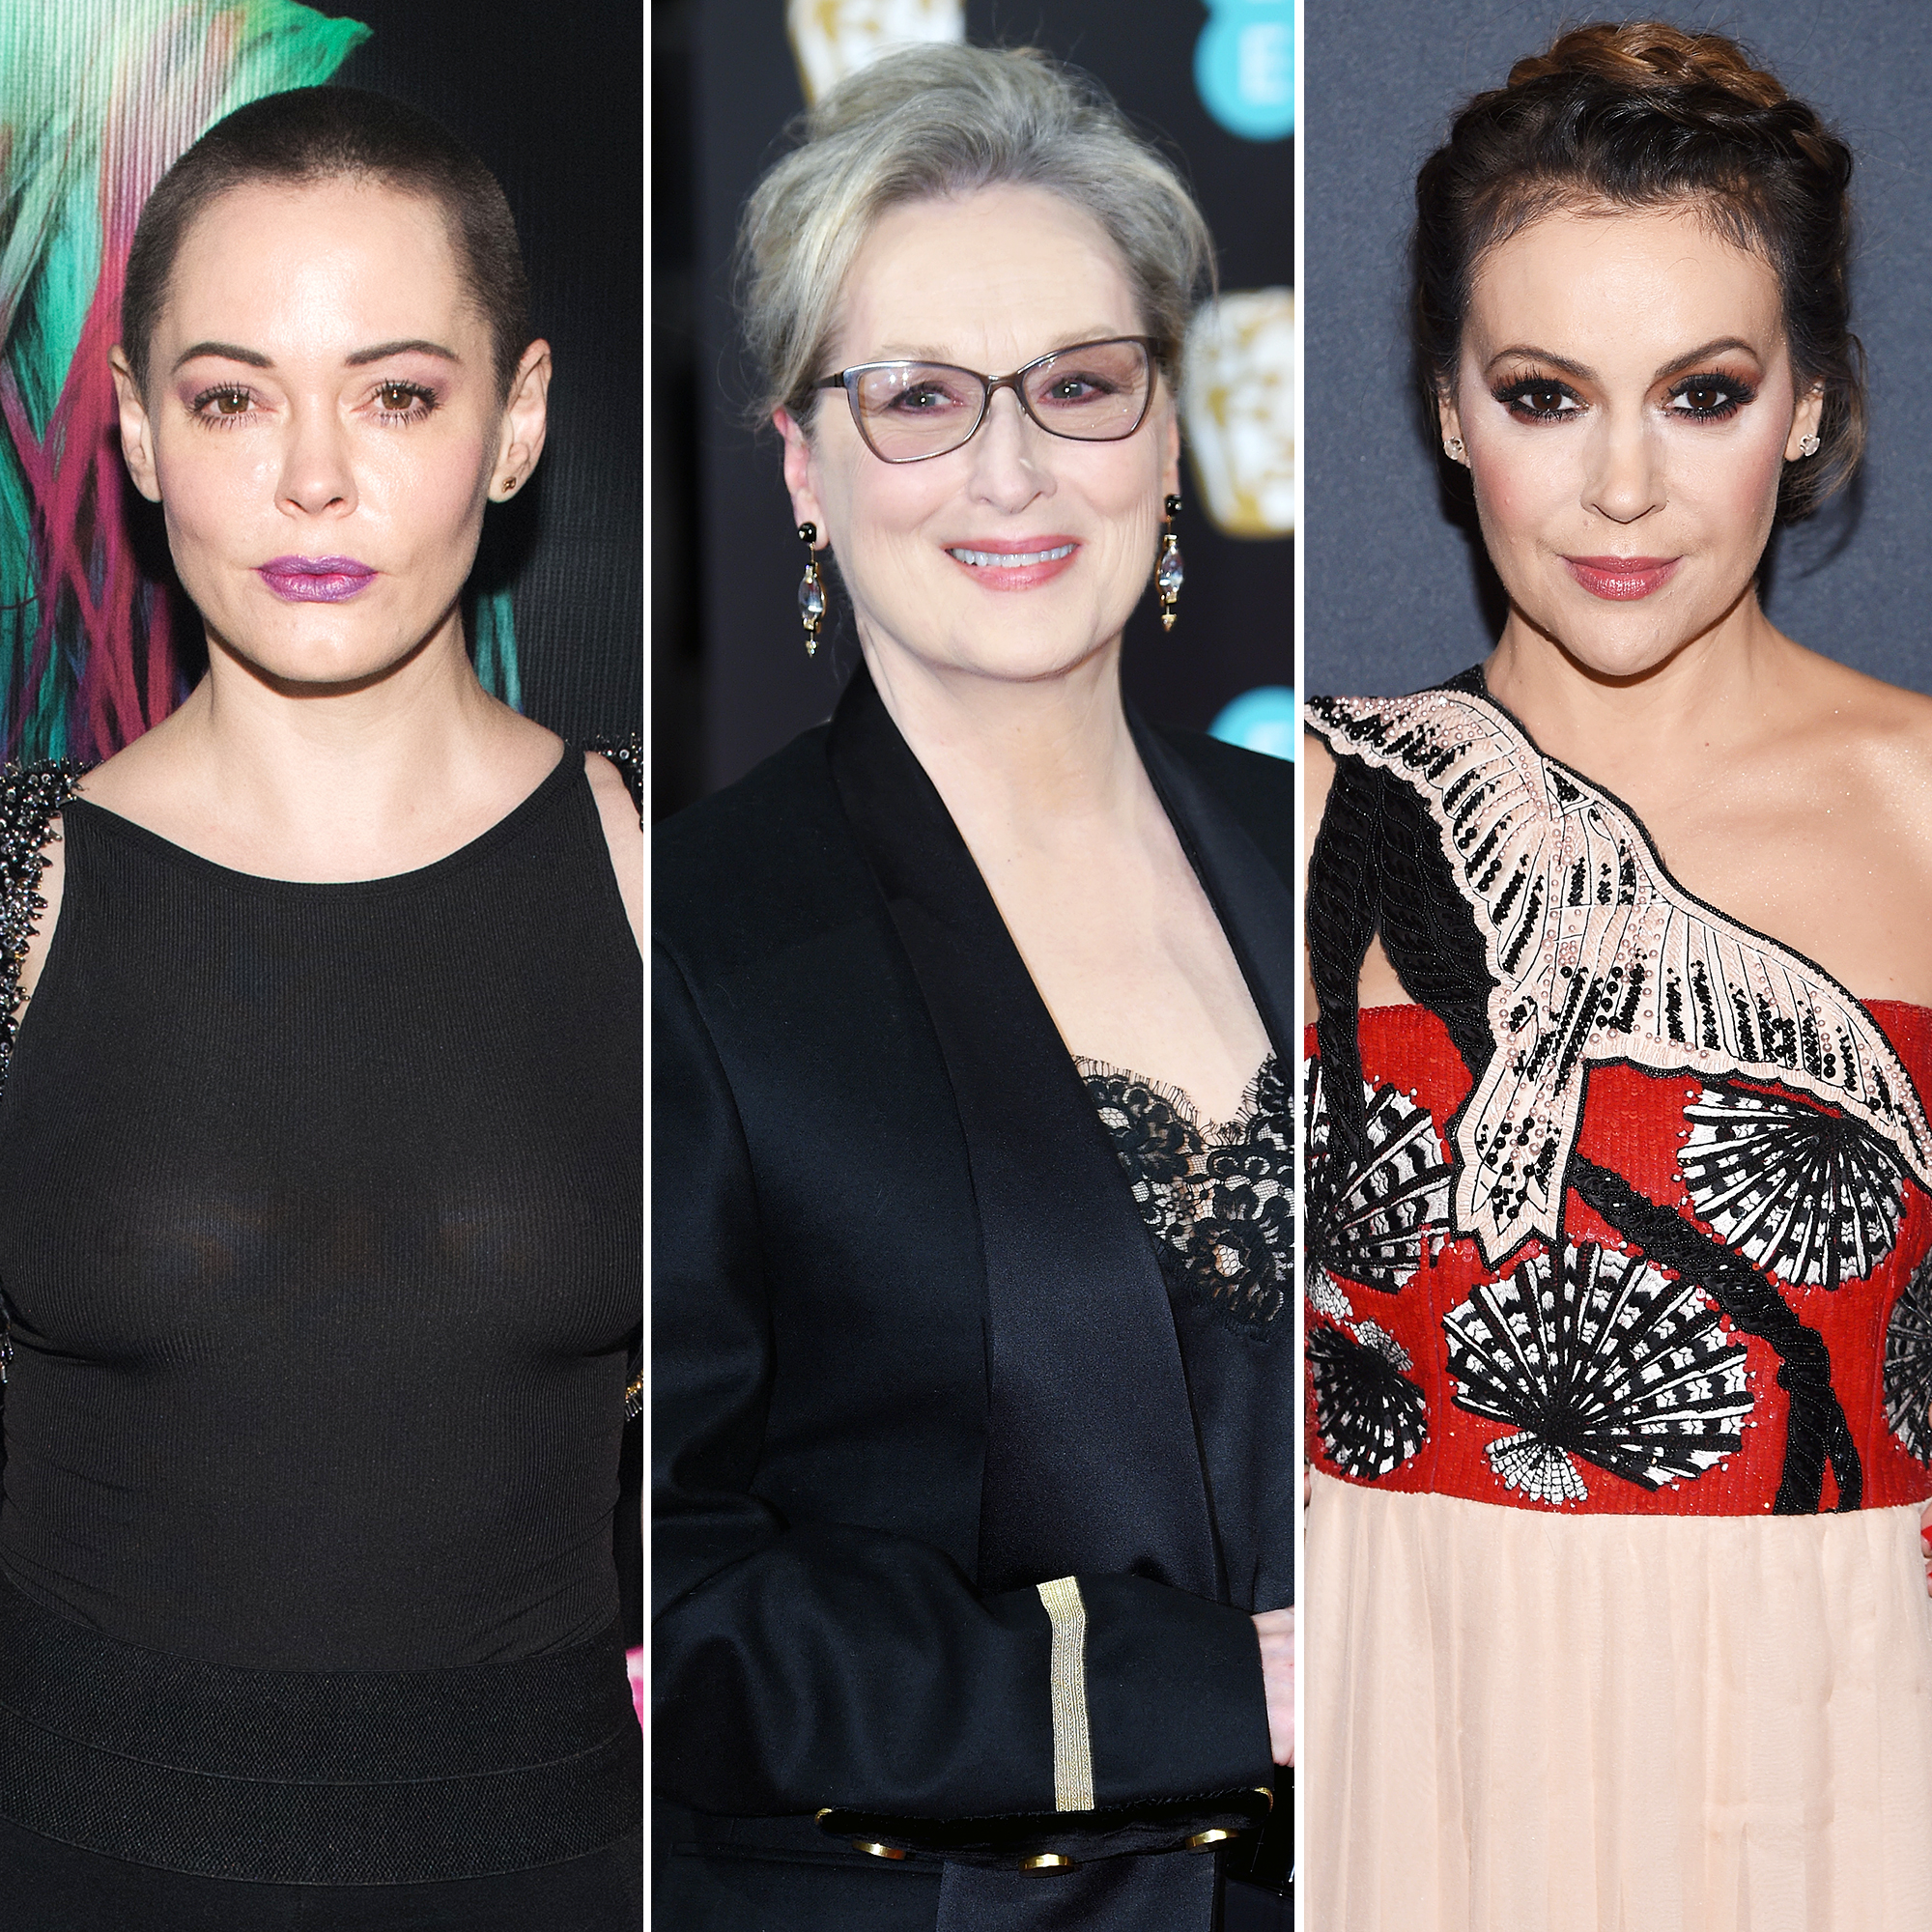 Rose McGowan Calls Alyssa Milano 'Fake': 'You Make Me Want To Vomit'